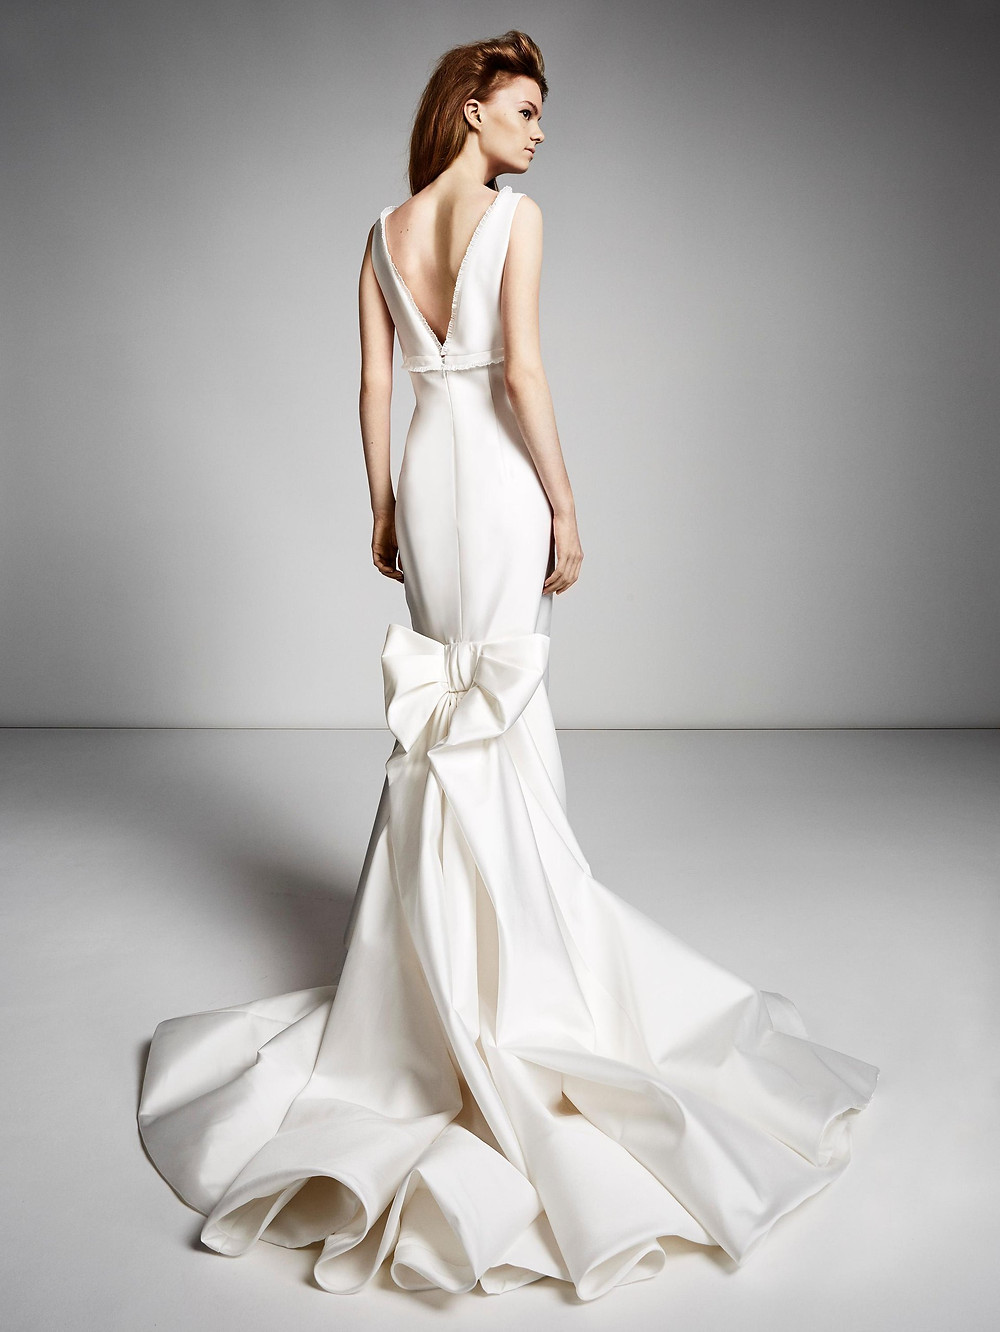 A Viktor & Rolf simple silk mermaid fit and flare wedding dress with a bow